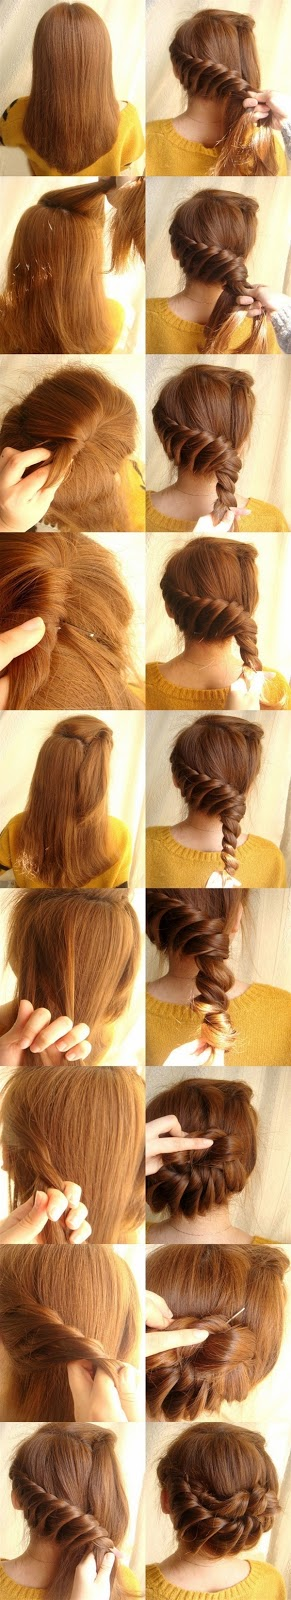 step by step hairstyles easy made | StylesNew